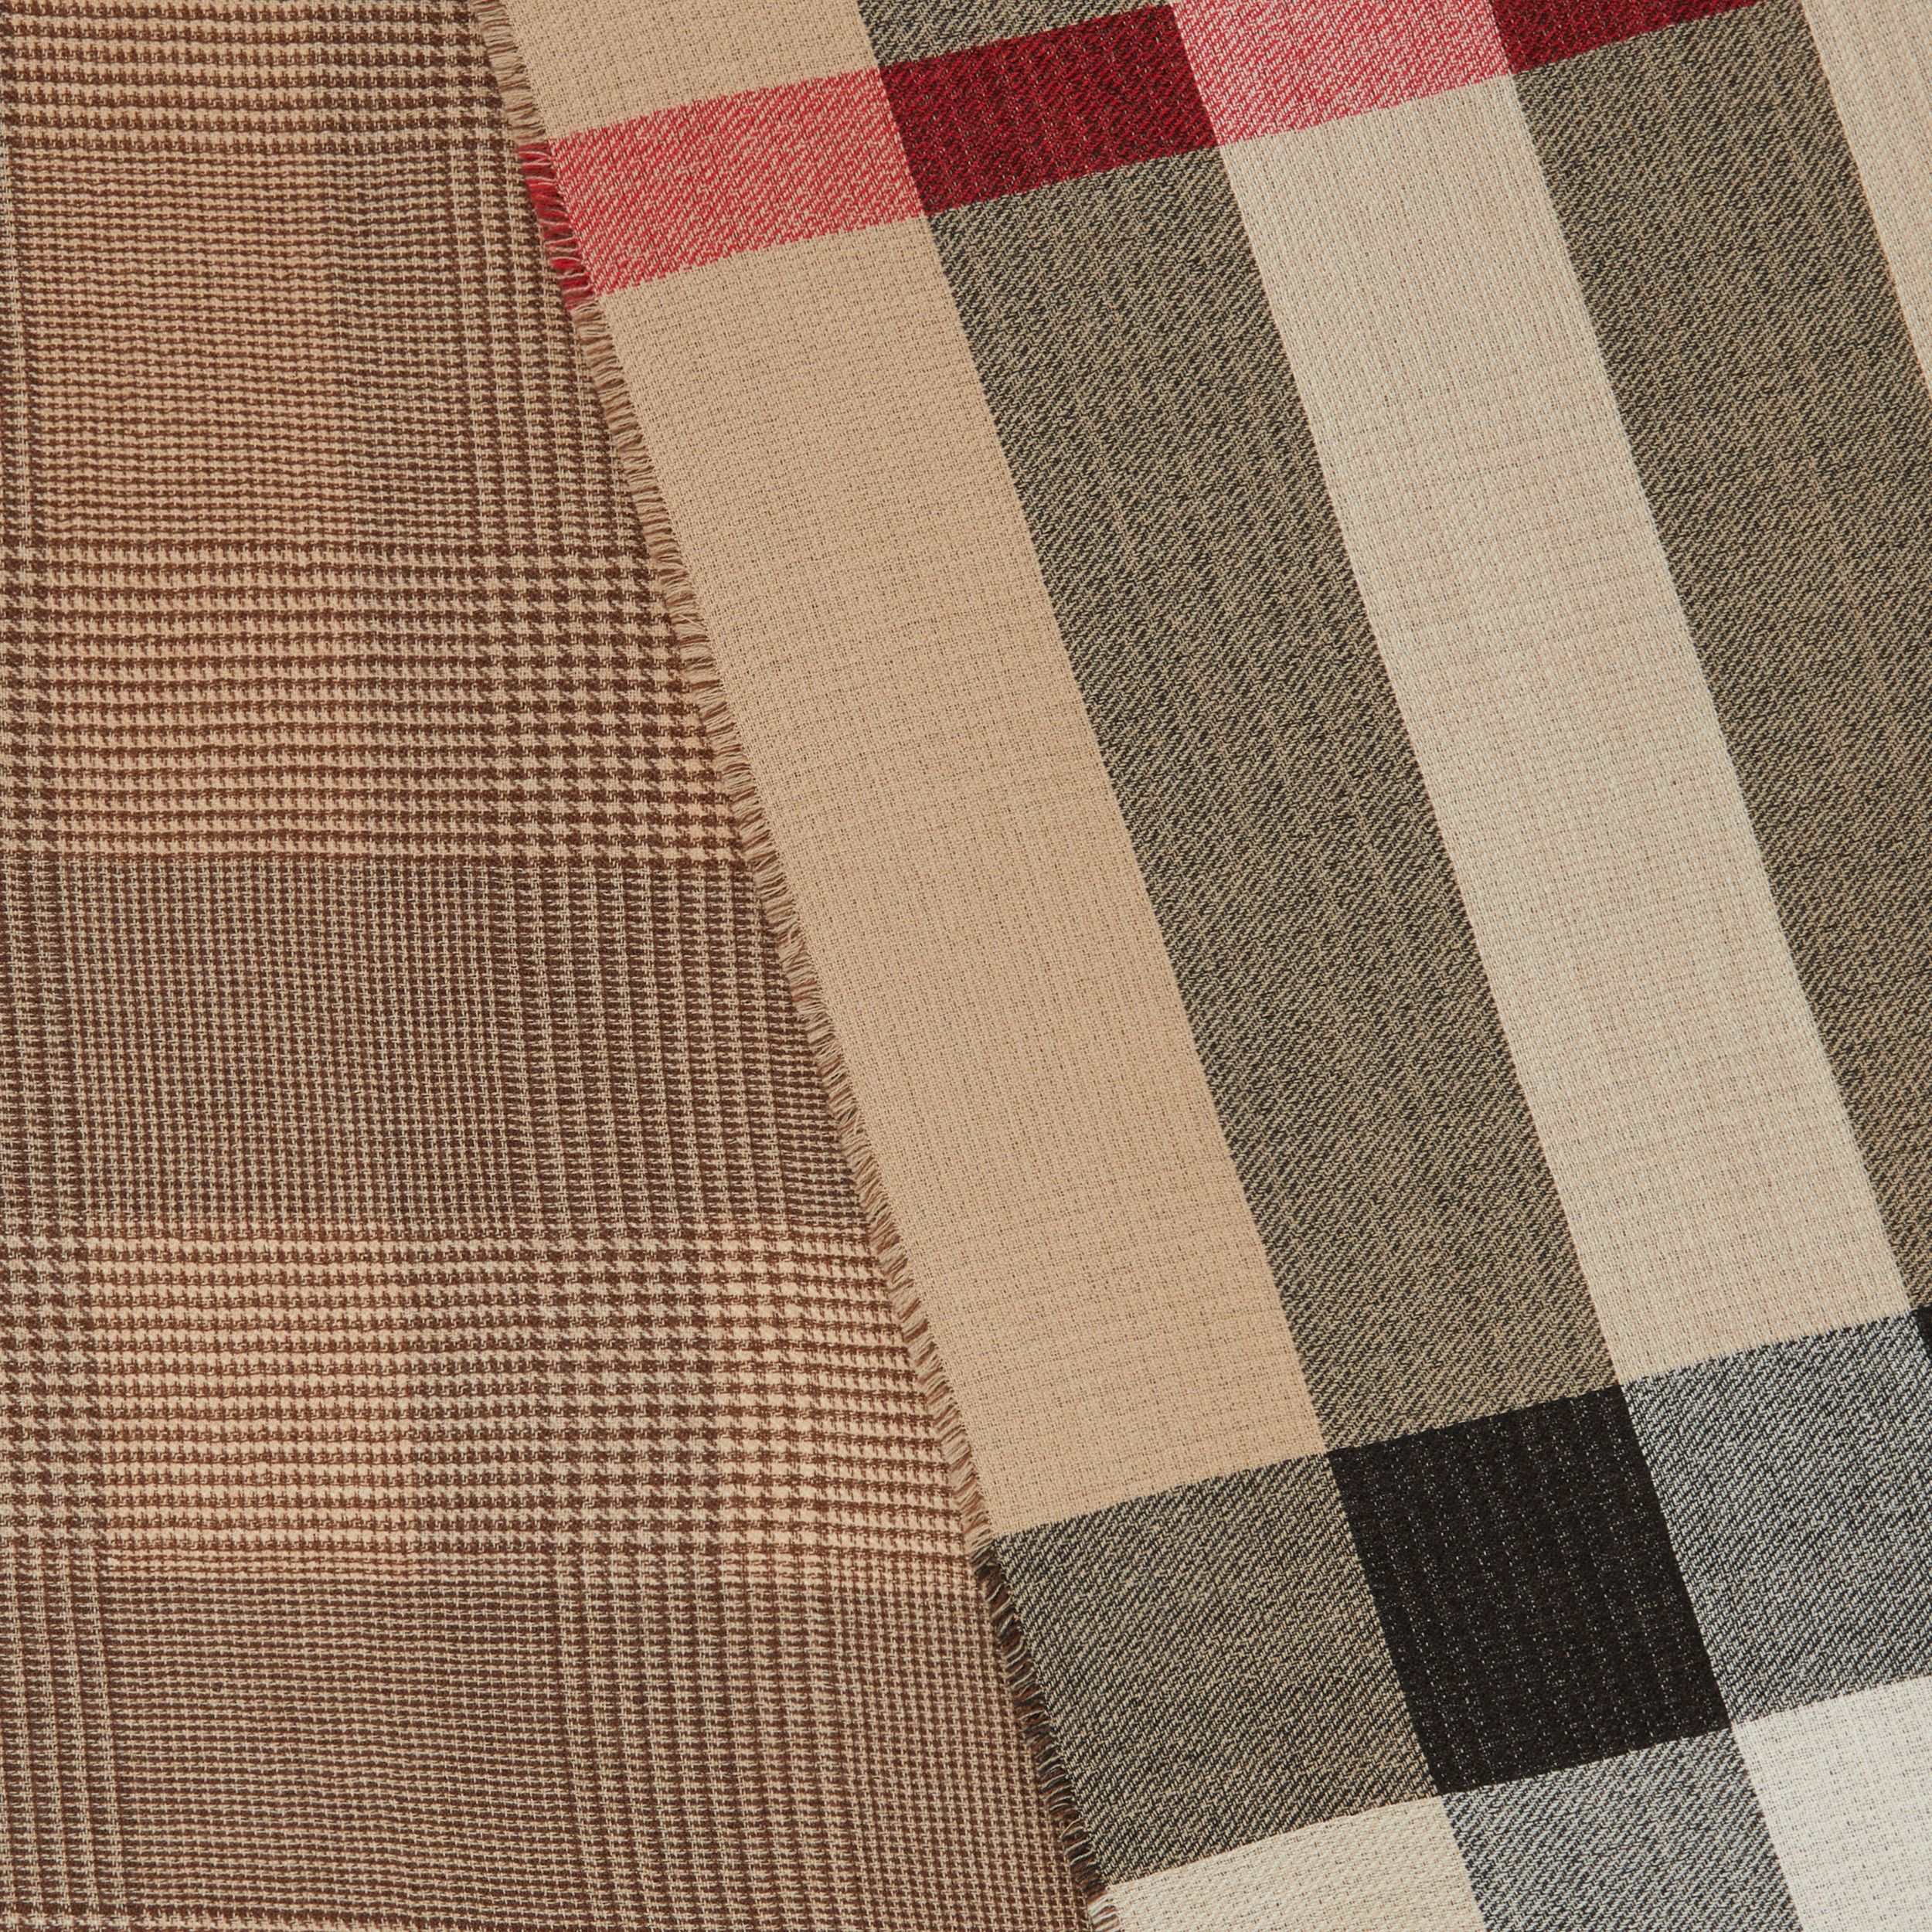 Reversible Check Cashmere Scarf in Archive Beige | Burberry - 2